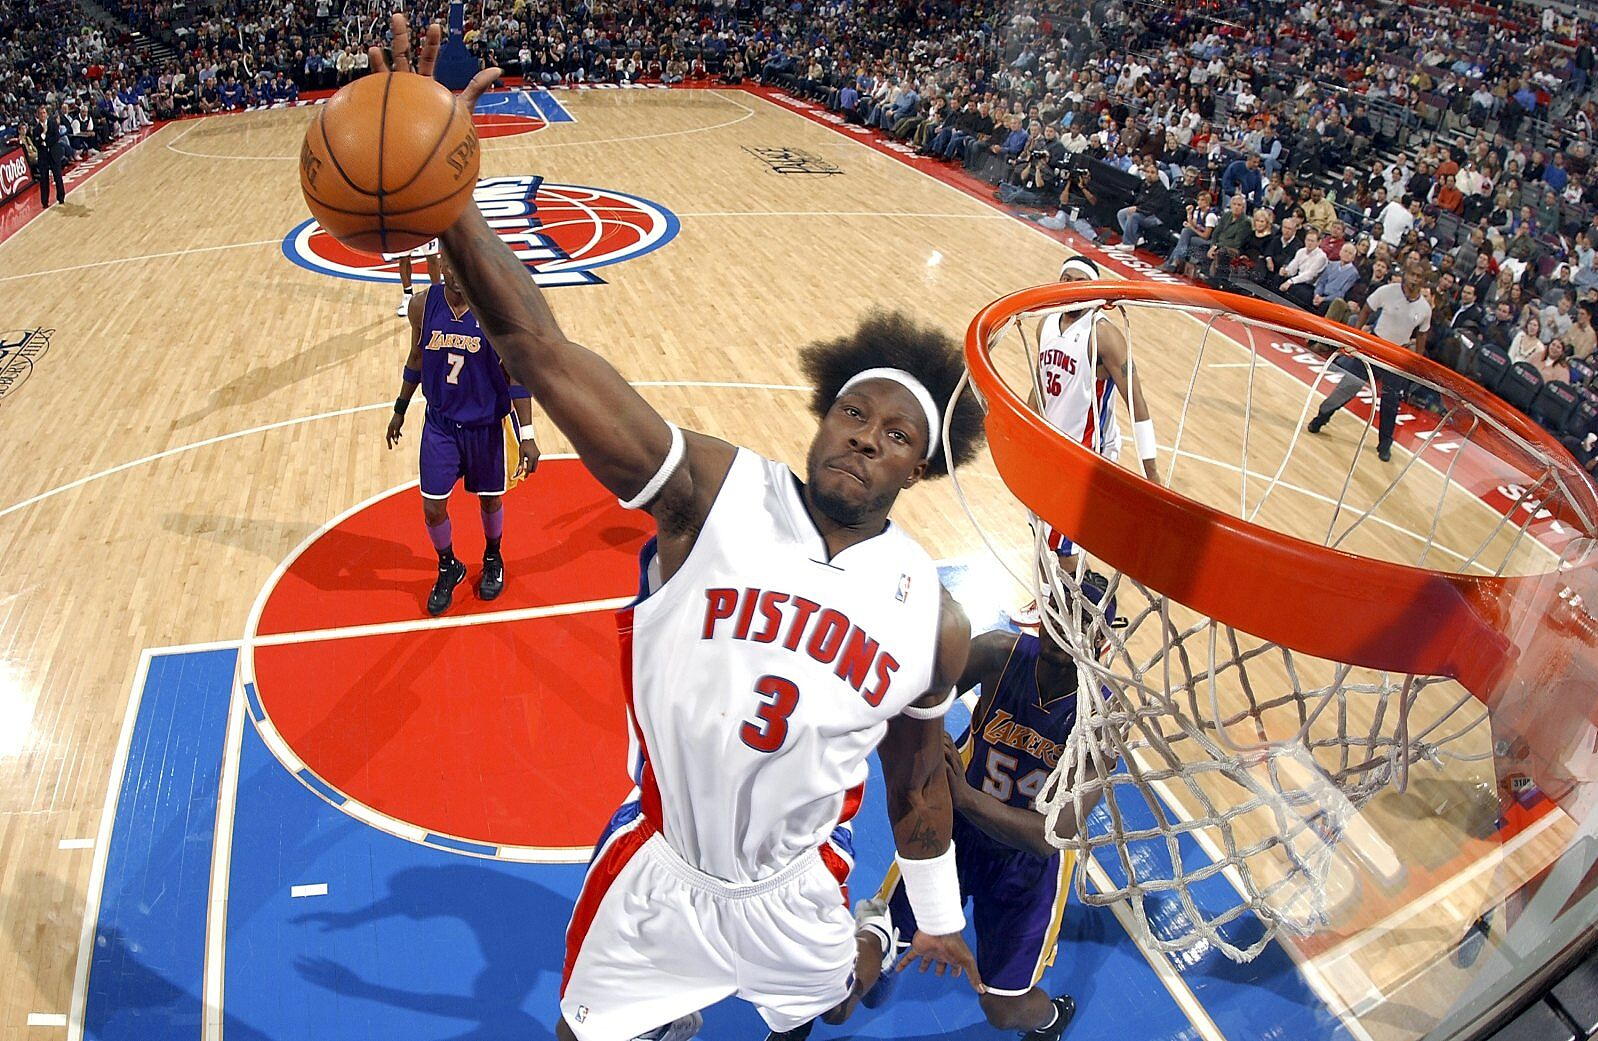 Detroit Pistons: Quick or slow the better way to win NBA